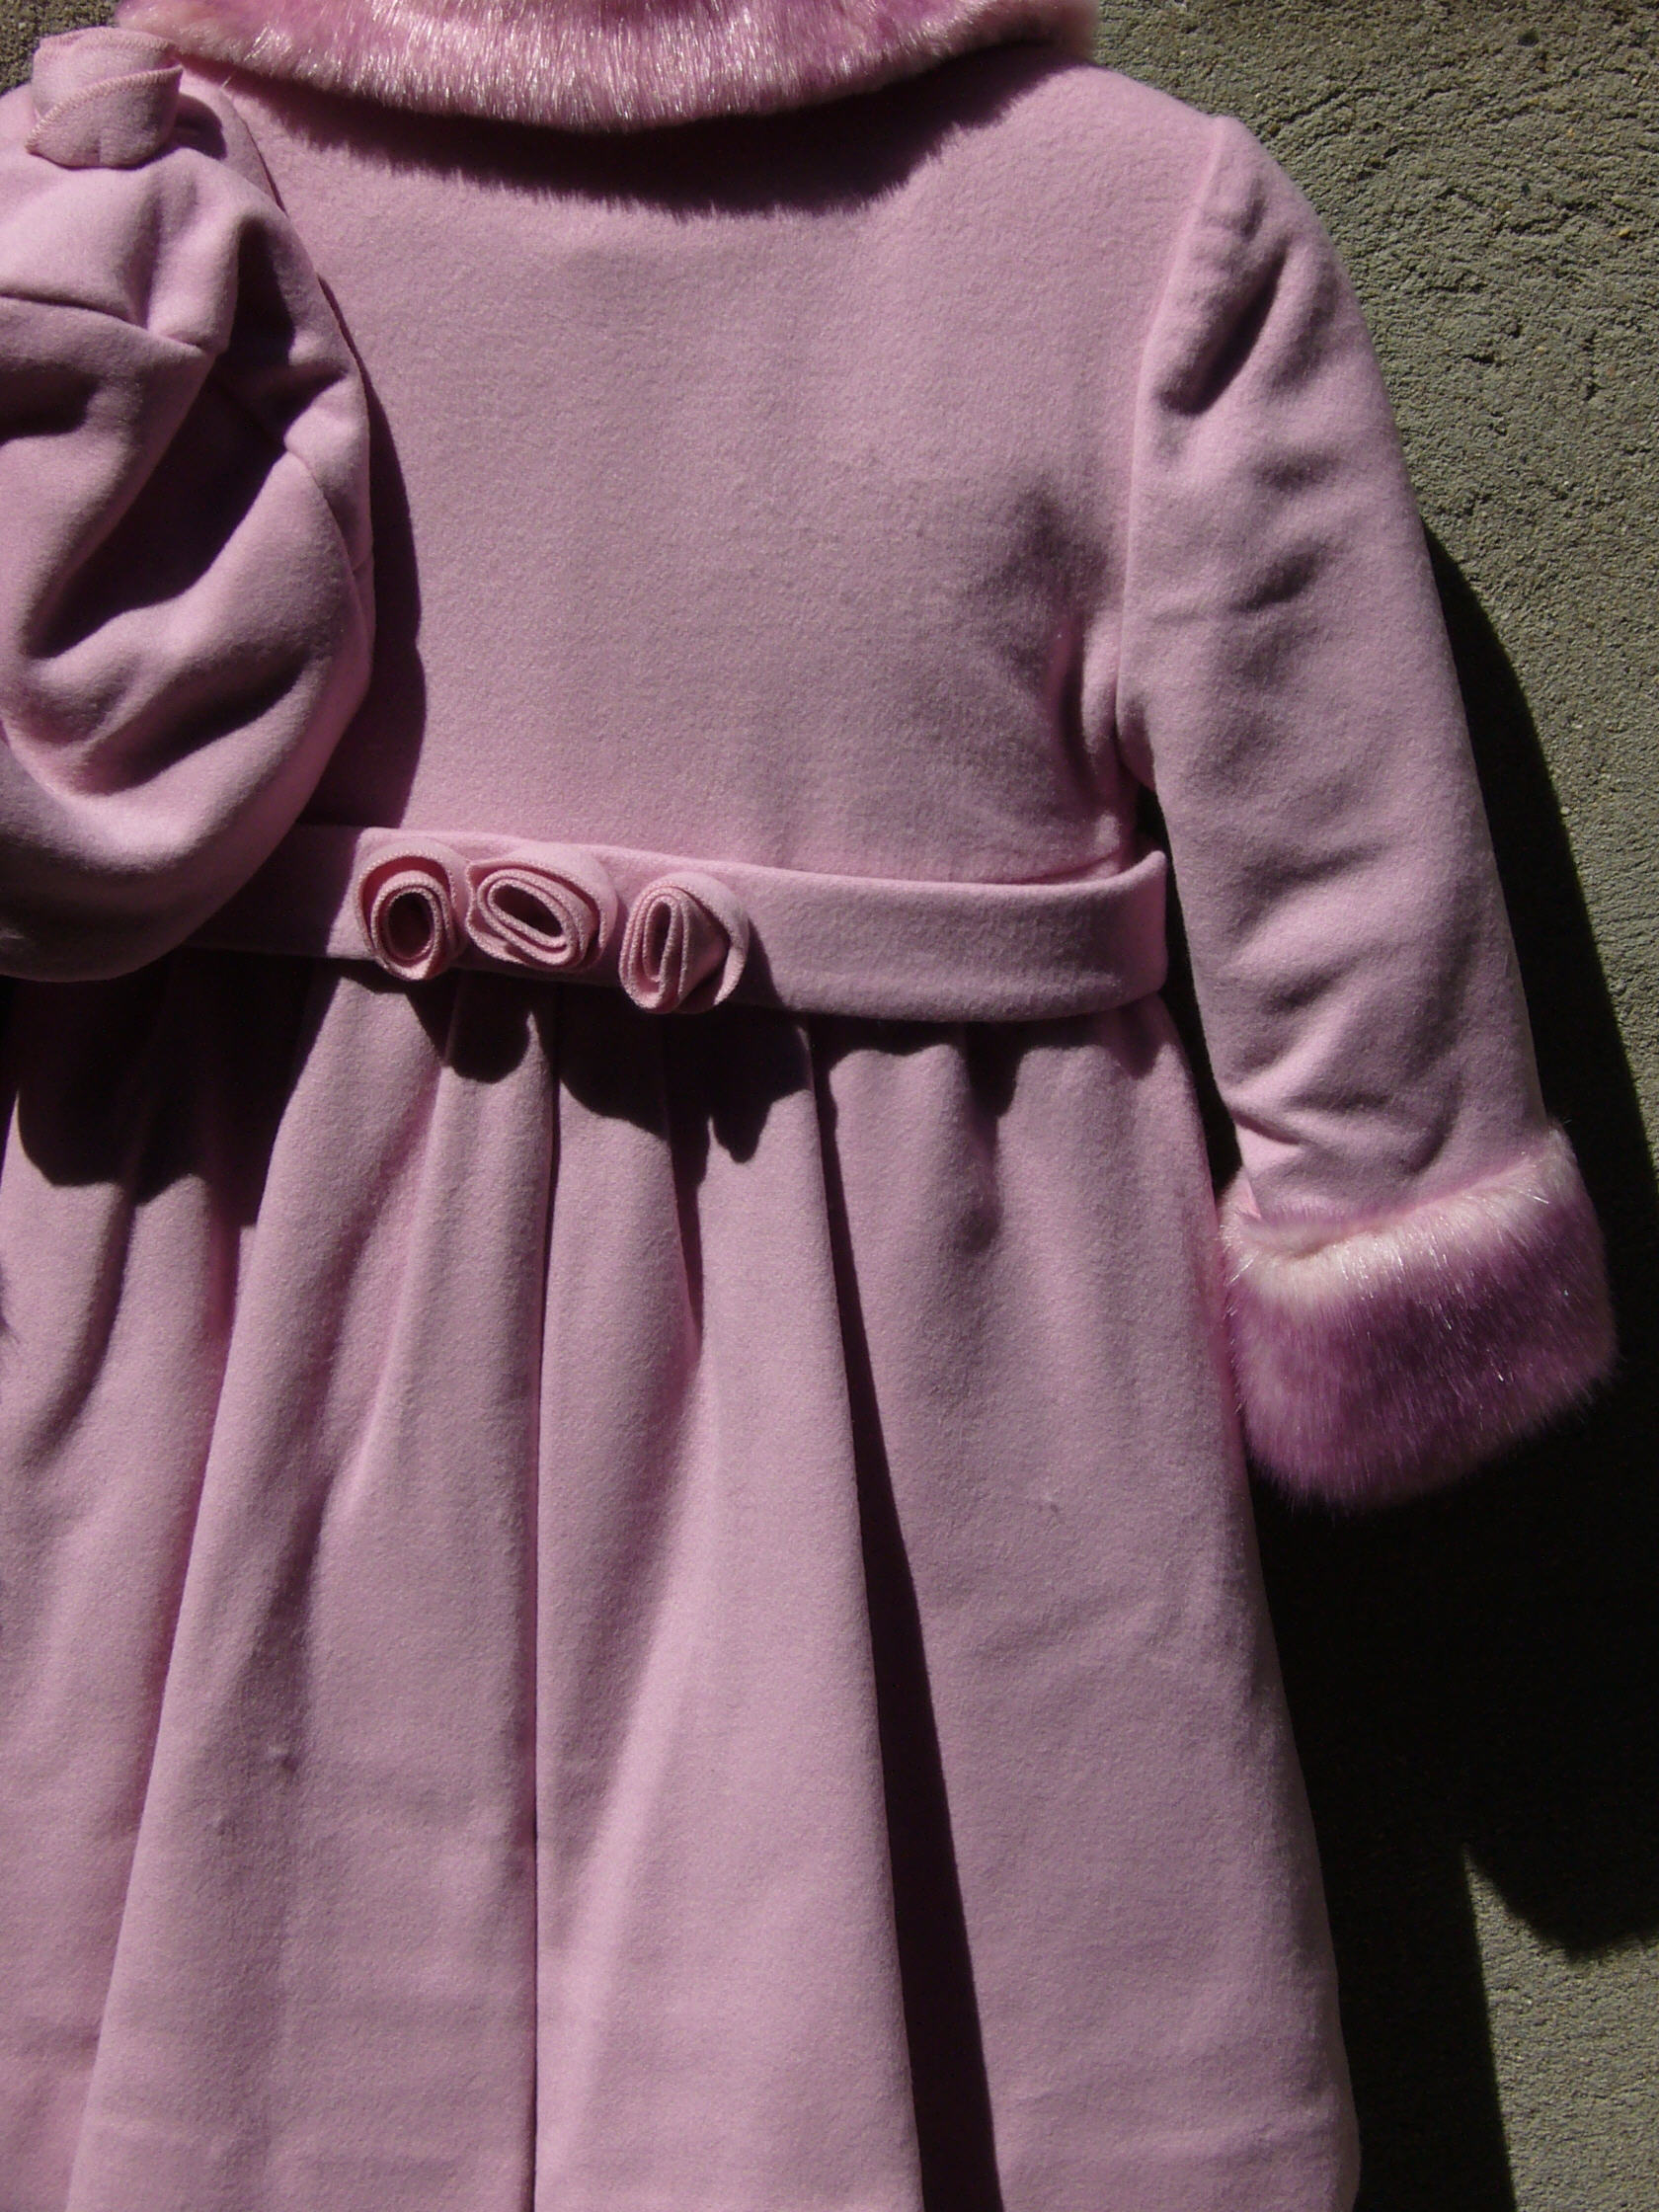 8c34a913efec Our low price includes the hat and purse. We are proud to offer this wool  coat at  89 for sizes ...